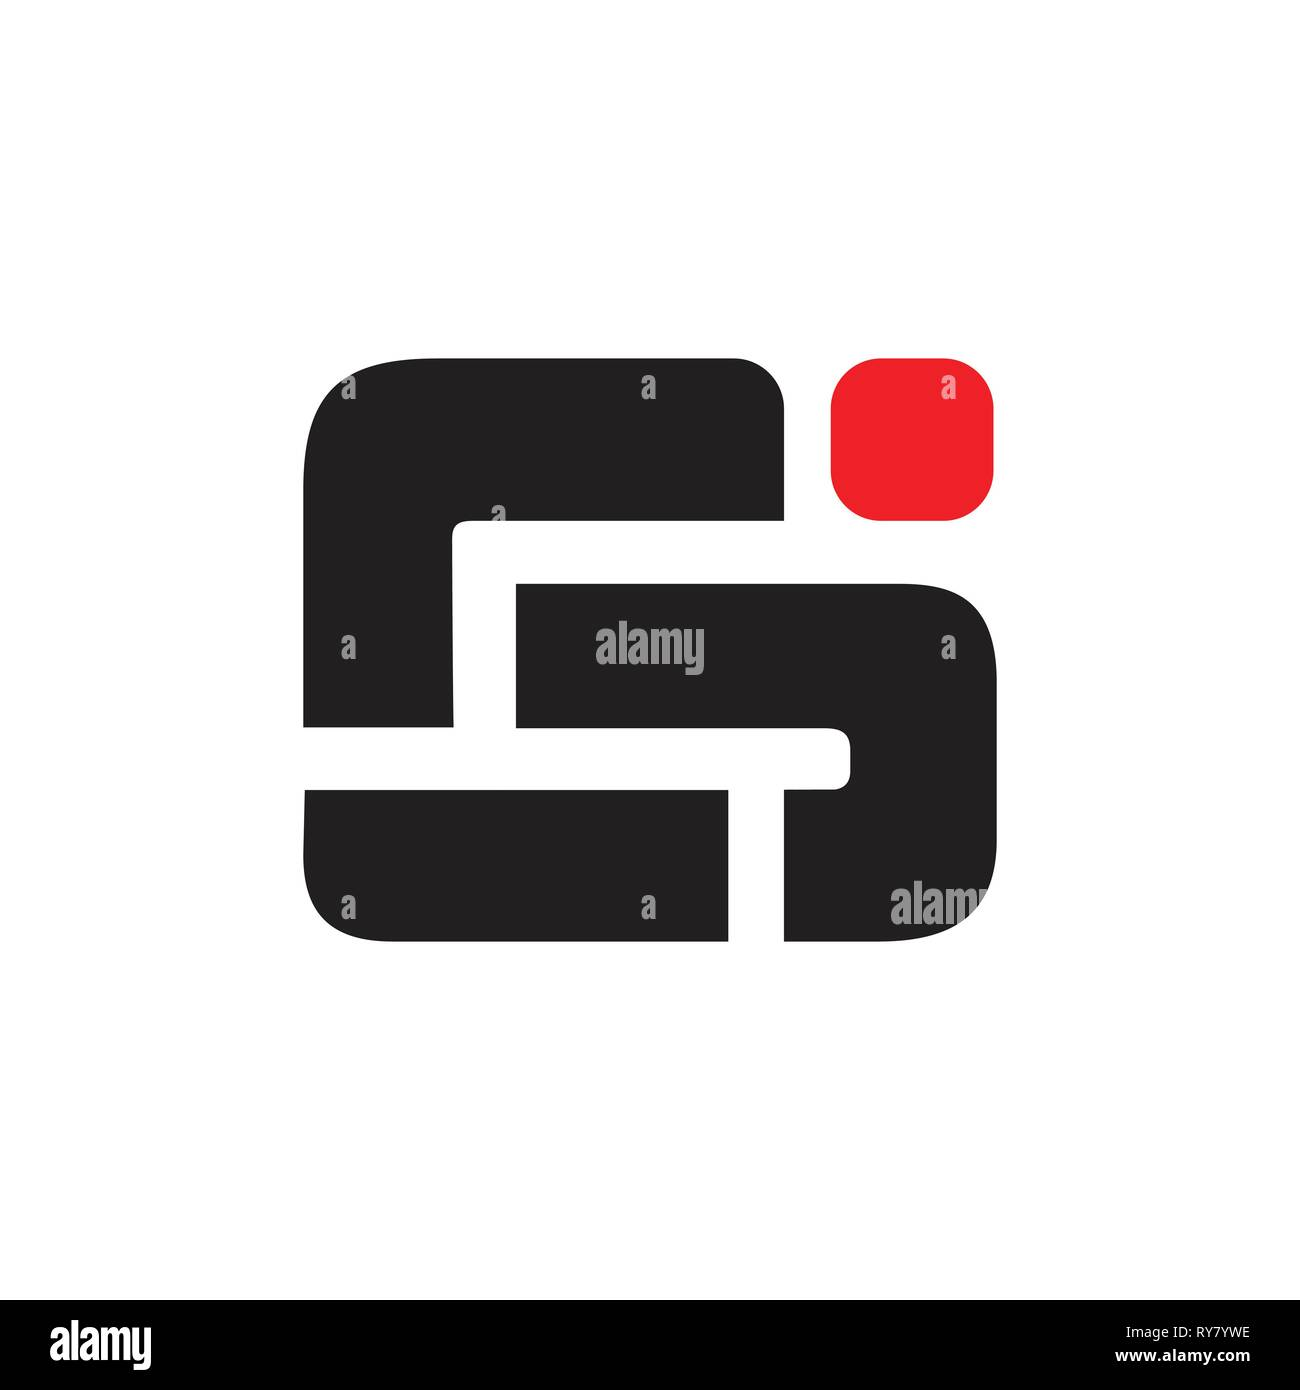 Abstract Letter Ig Simple Geometric Logo Vector Stock Vector Image Art Alamy